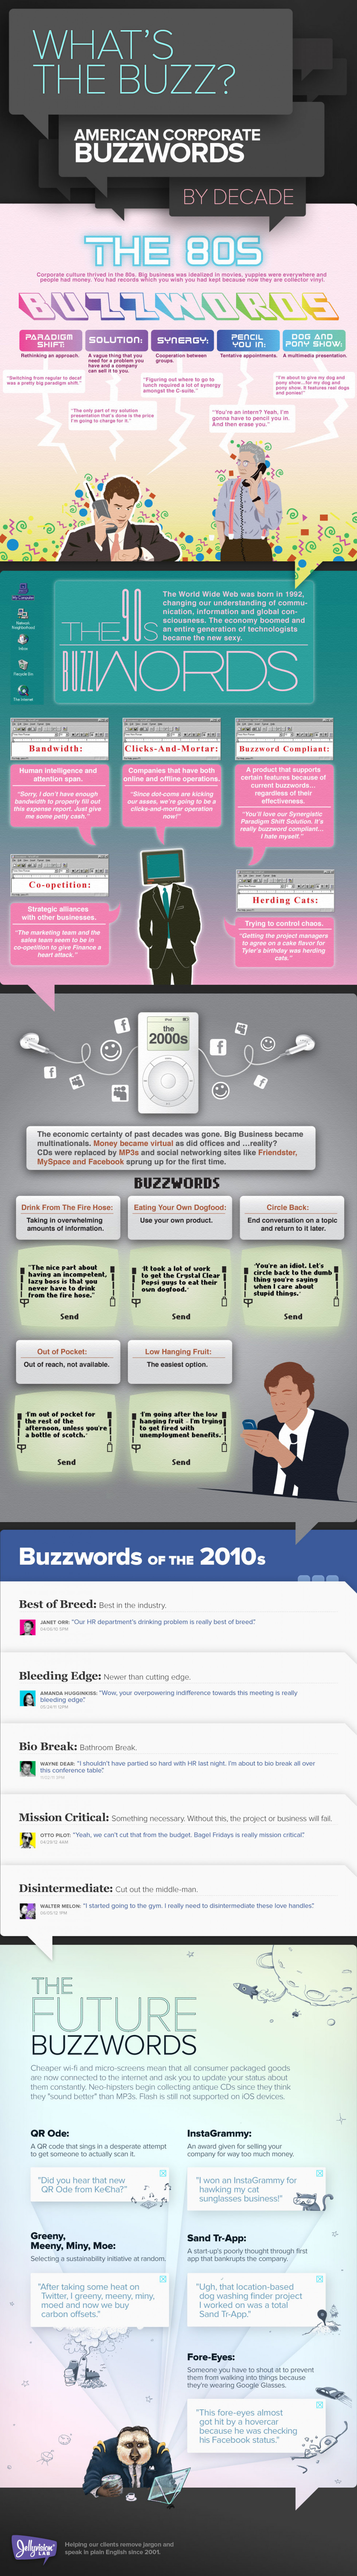 American Corporate Buzzwords By Decades Infographic